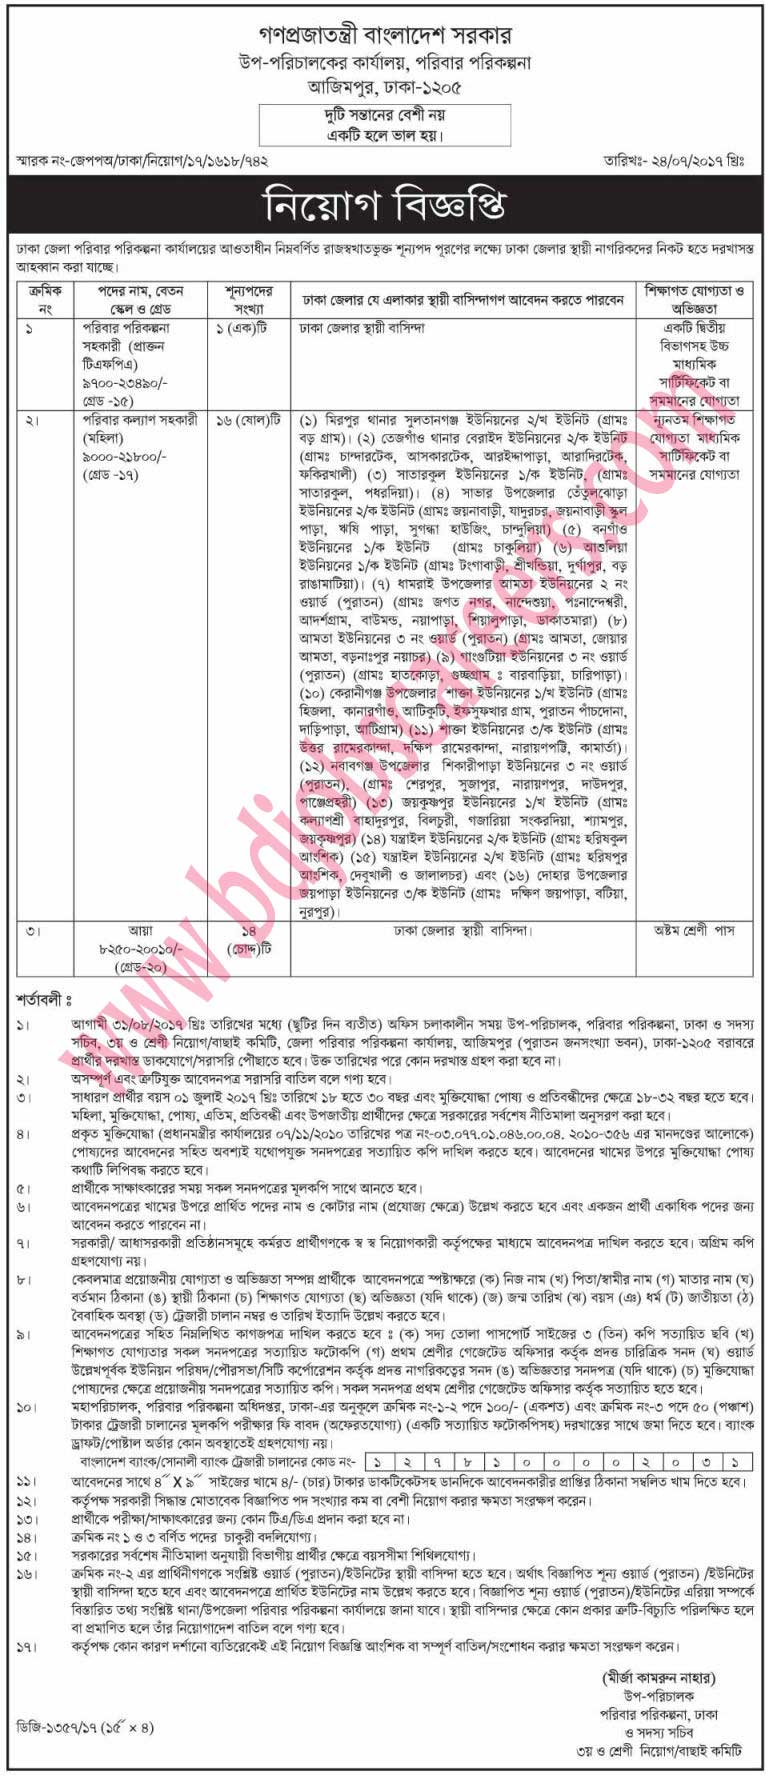 Azimpur Family Planning Deputy Director's Office Job Circular 2017